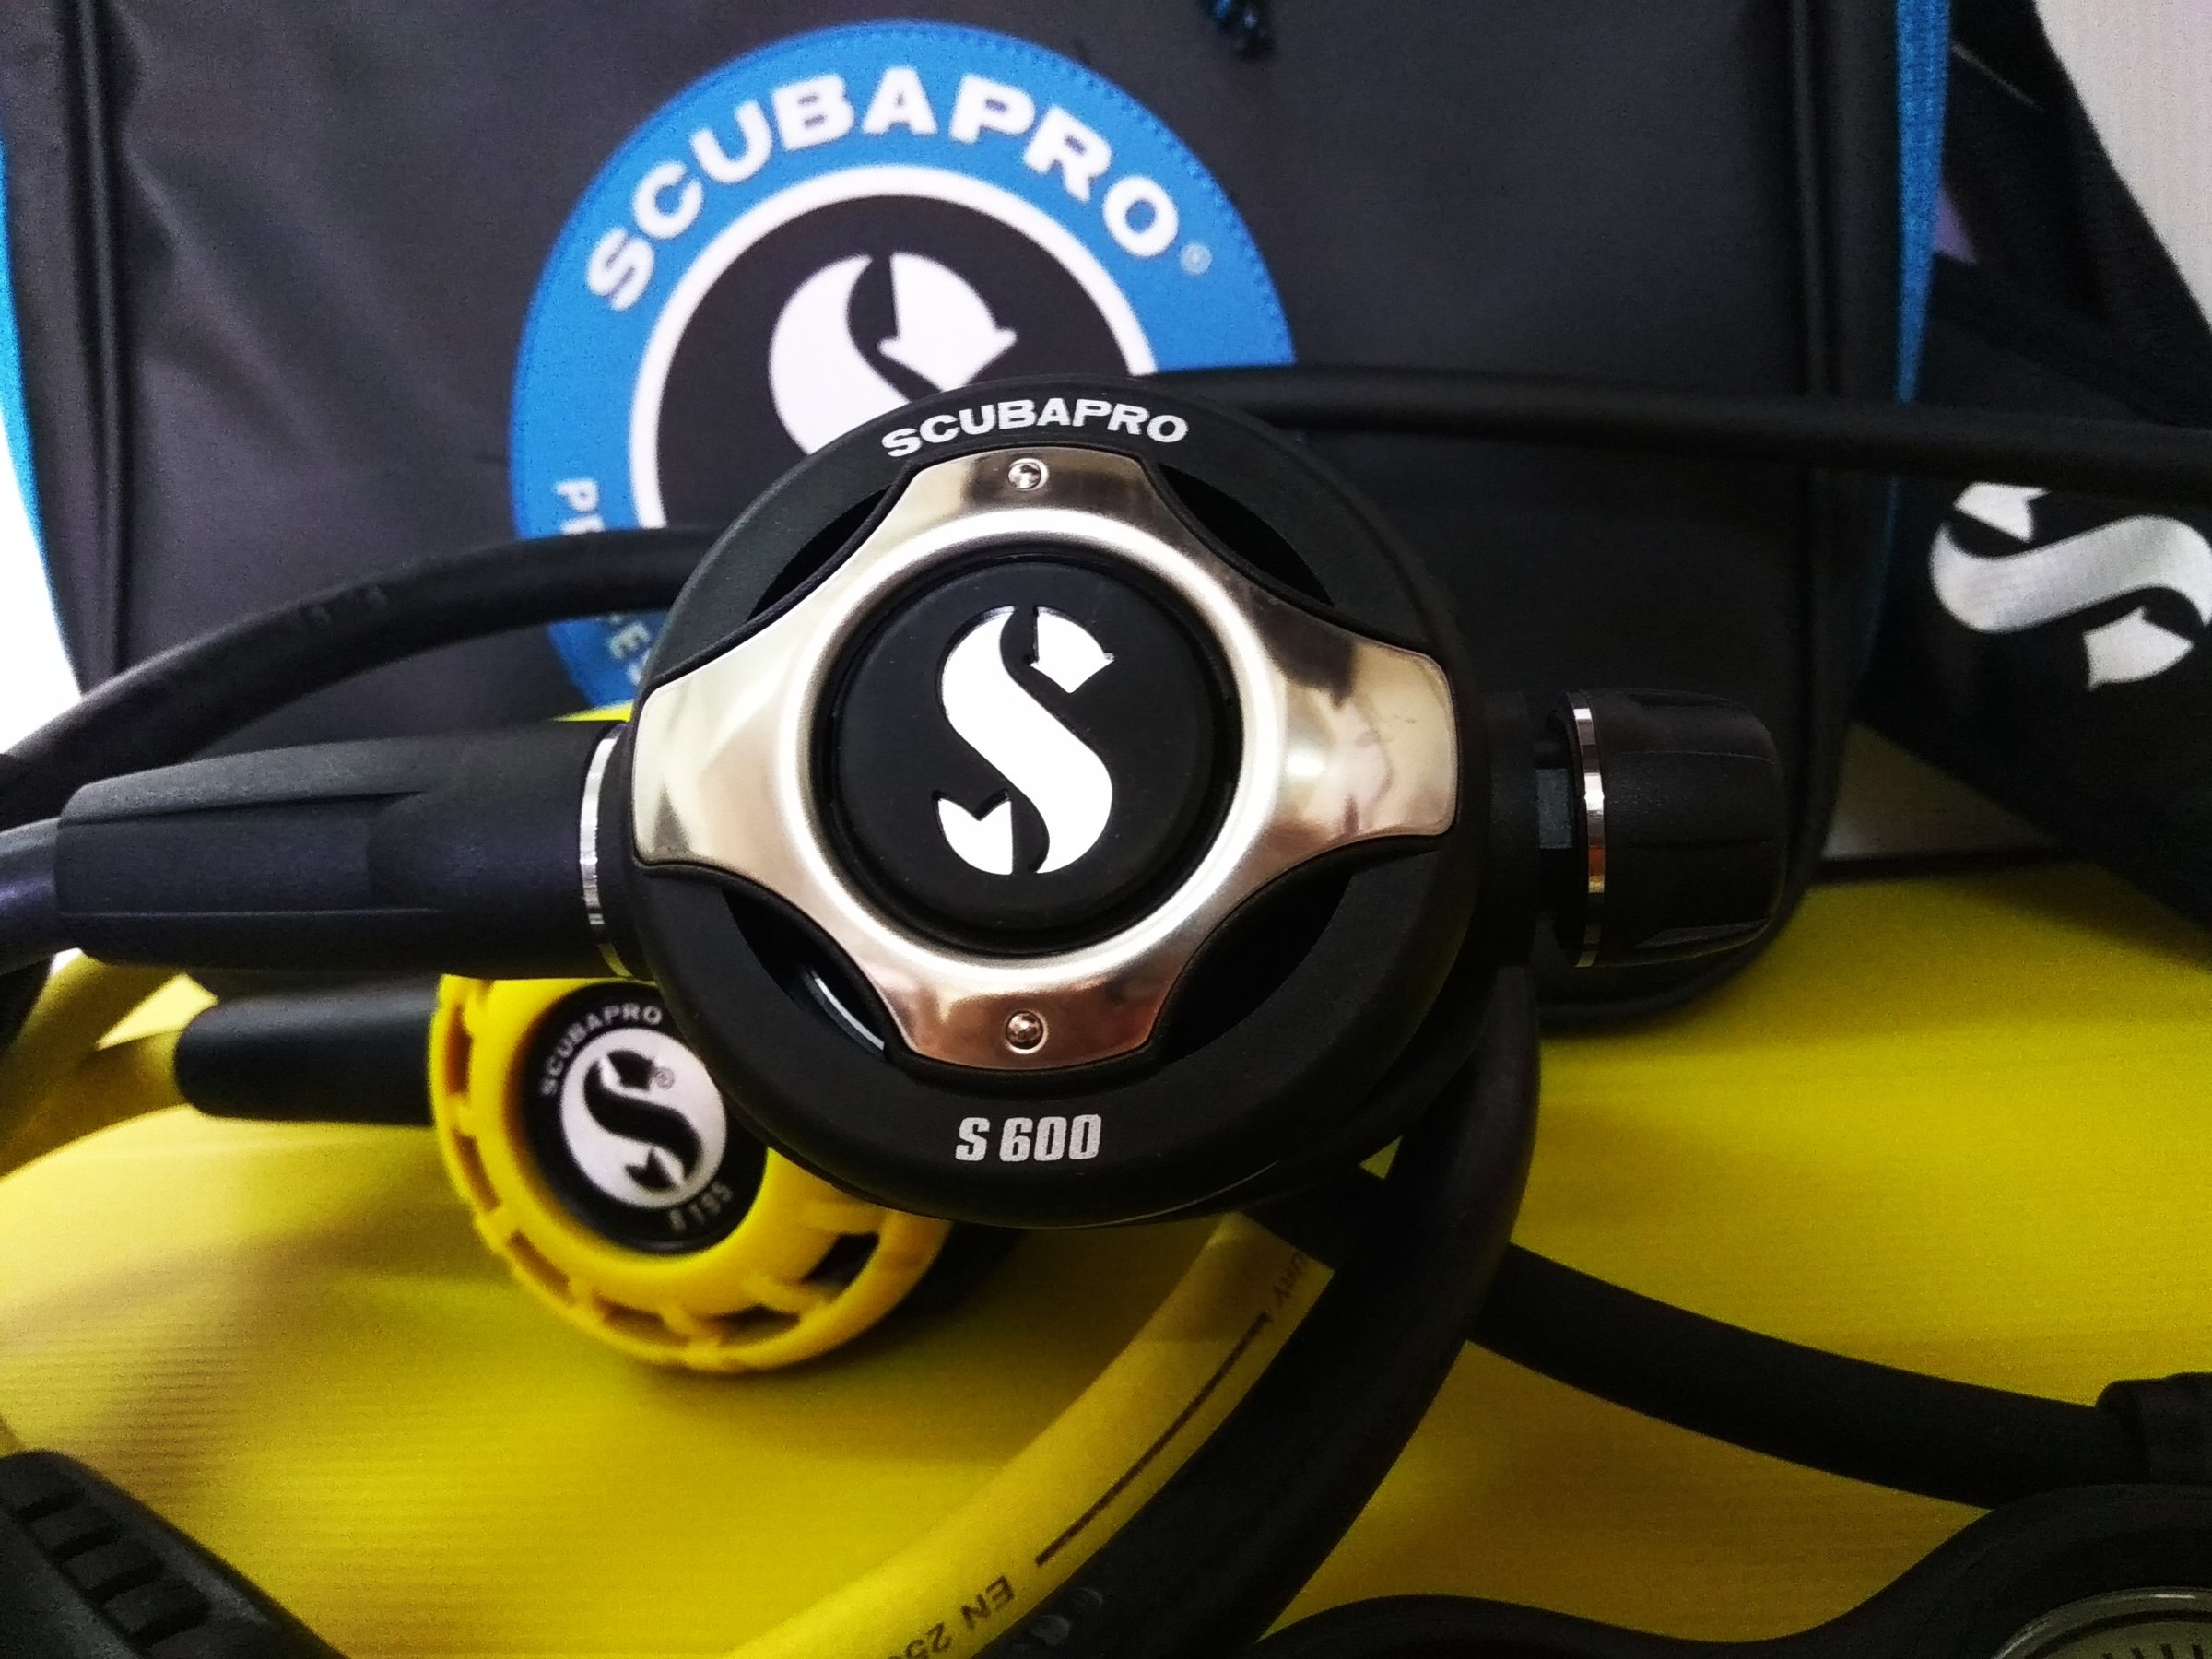 Scubapro Mk25 Evo S600 with R 195 octopus / double gauge and Free regulator bag